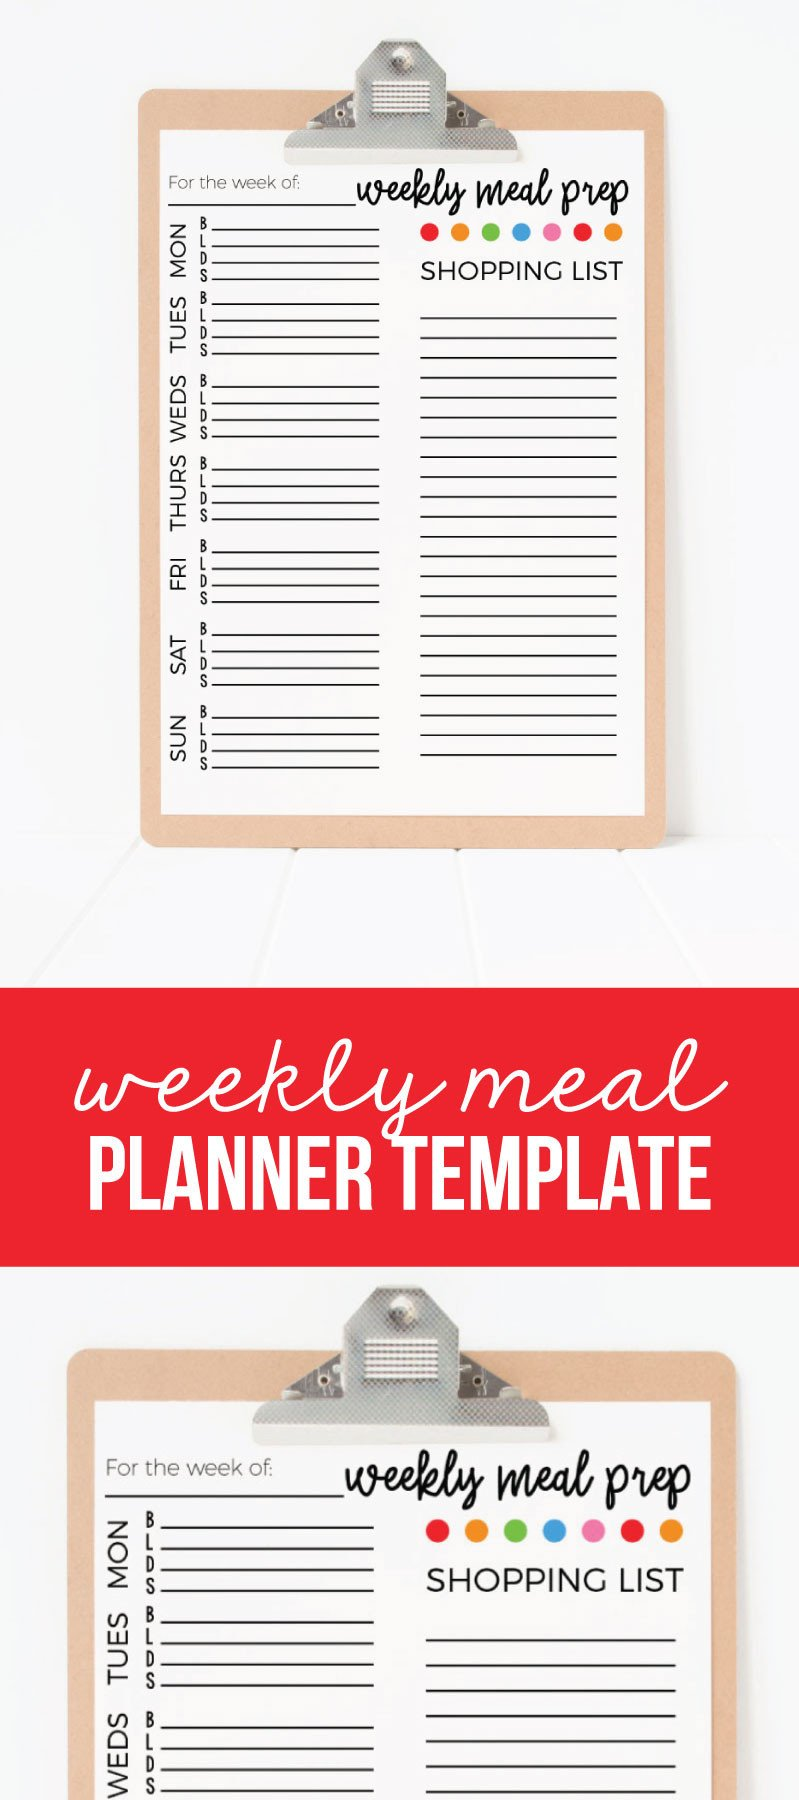 Free Meal Planner Template Weekly Meal Planner Template